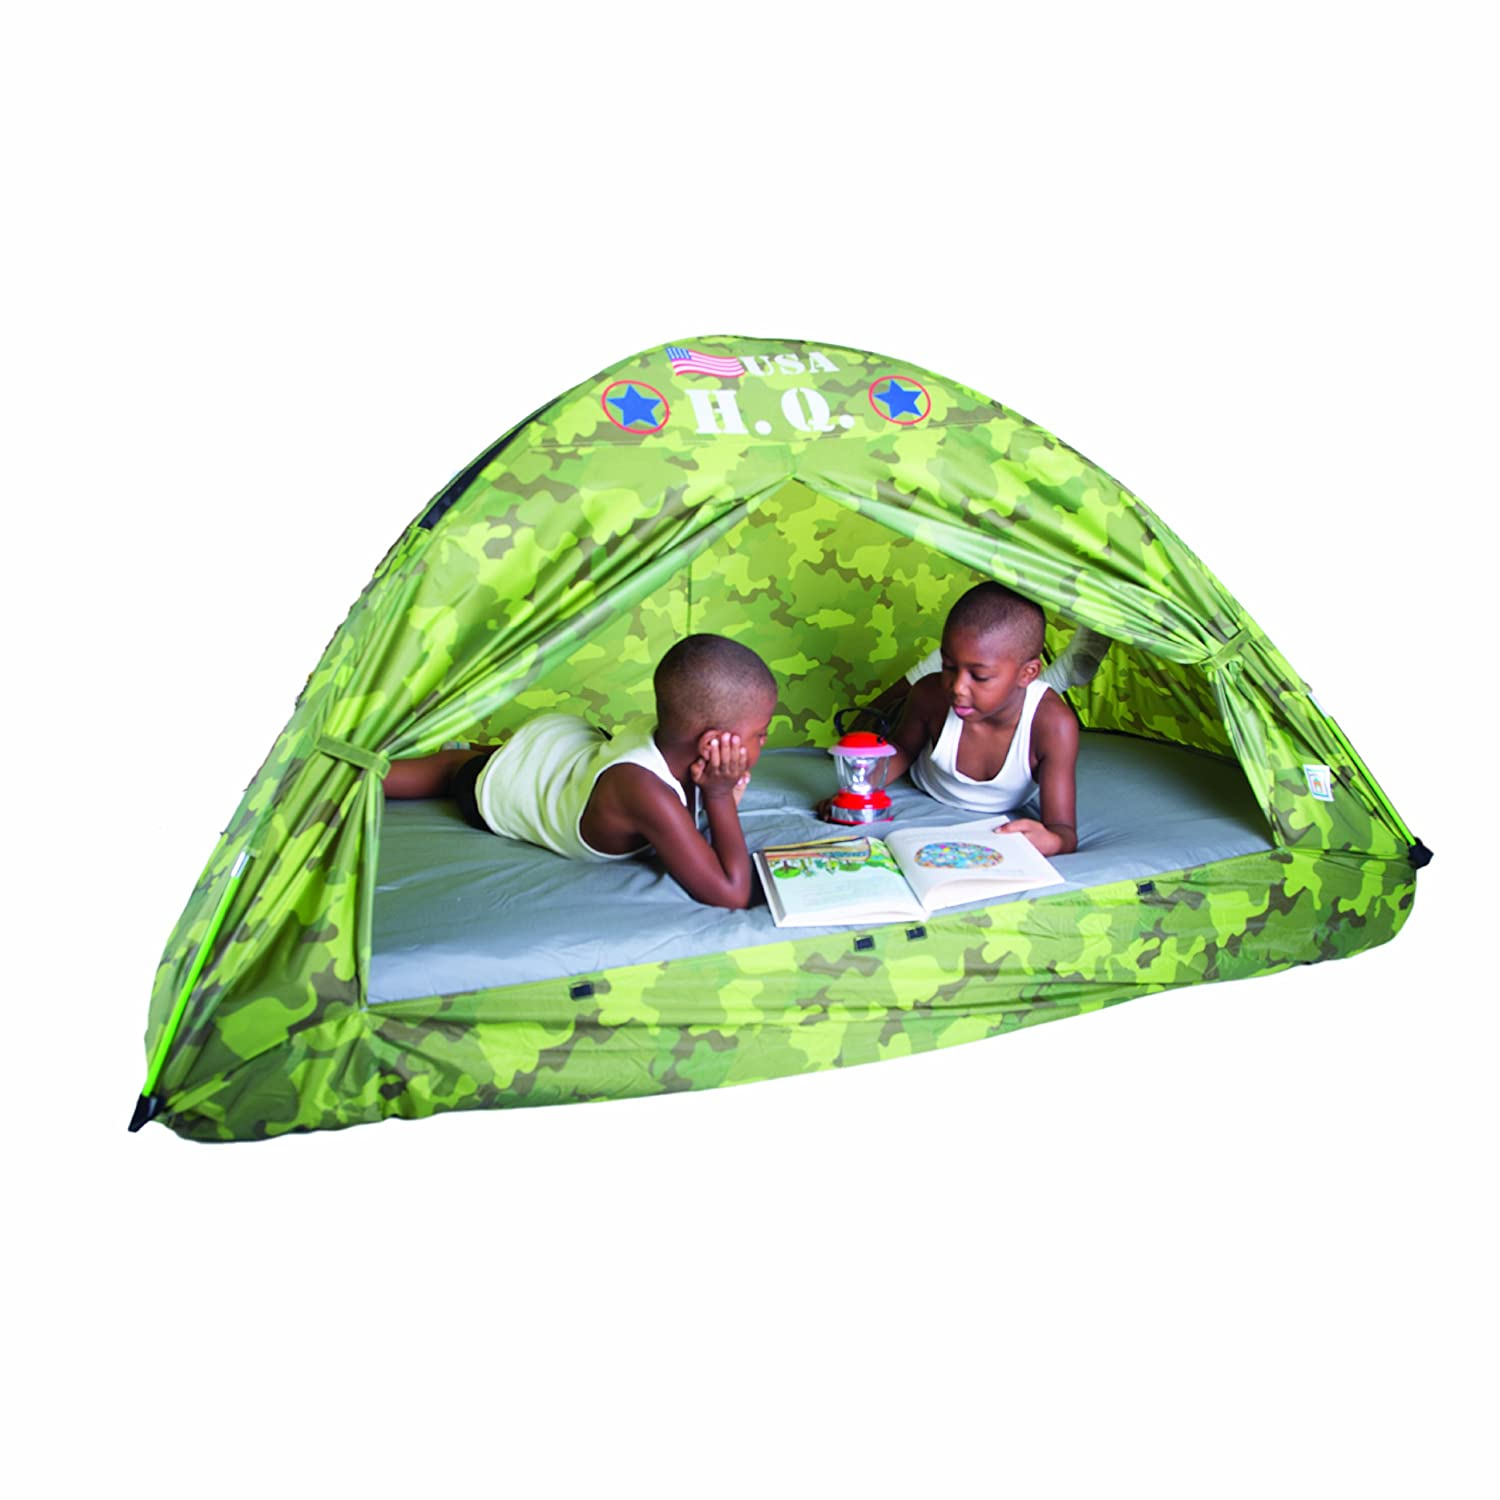 Amazon.com Pacific Play Tents HQ Twin Bed Tent Camouflage Toys u0026 Games  sc 1 st  Amazon.com & Amazon.com: Pacific Play Tents HQ Twin Bed Tent Camouflage: Toys ...